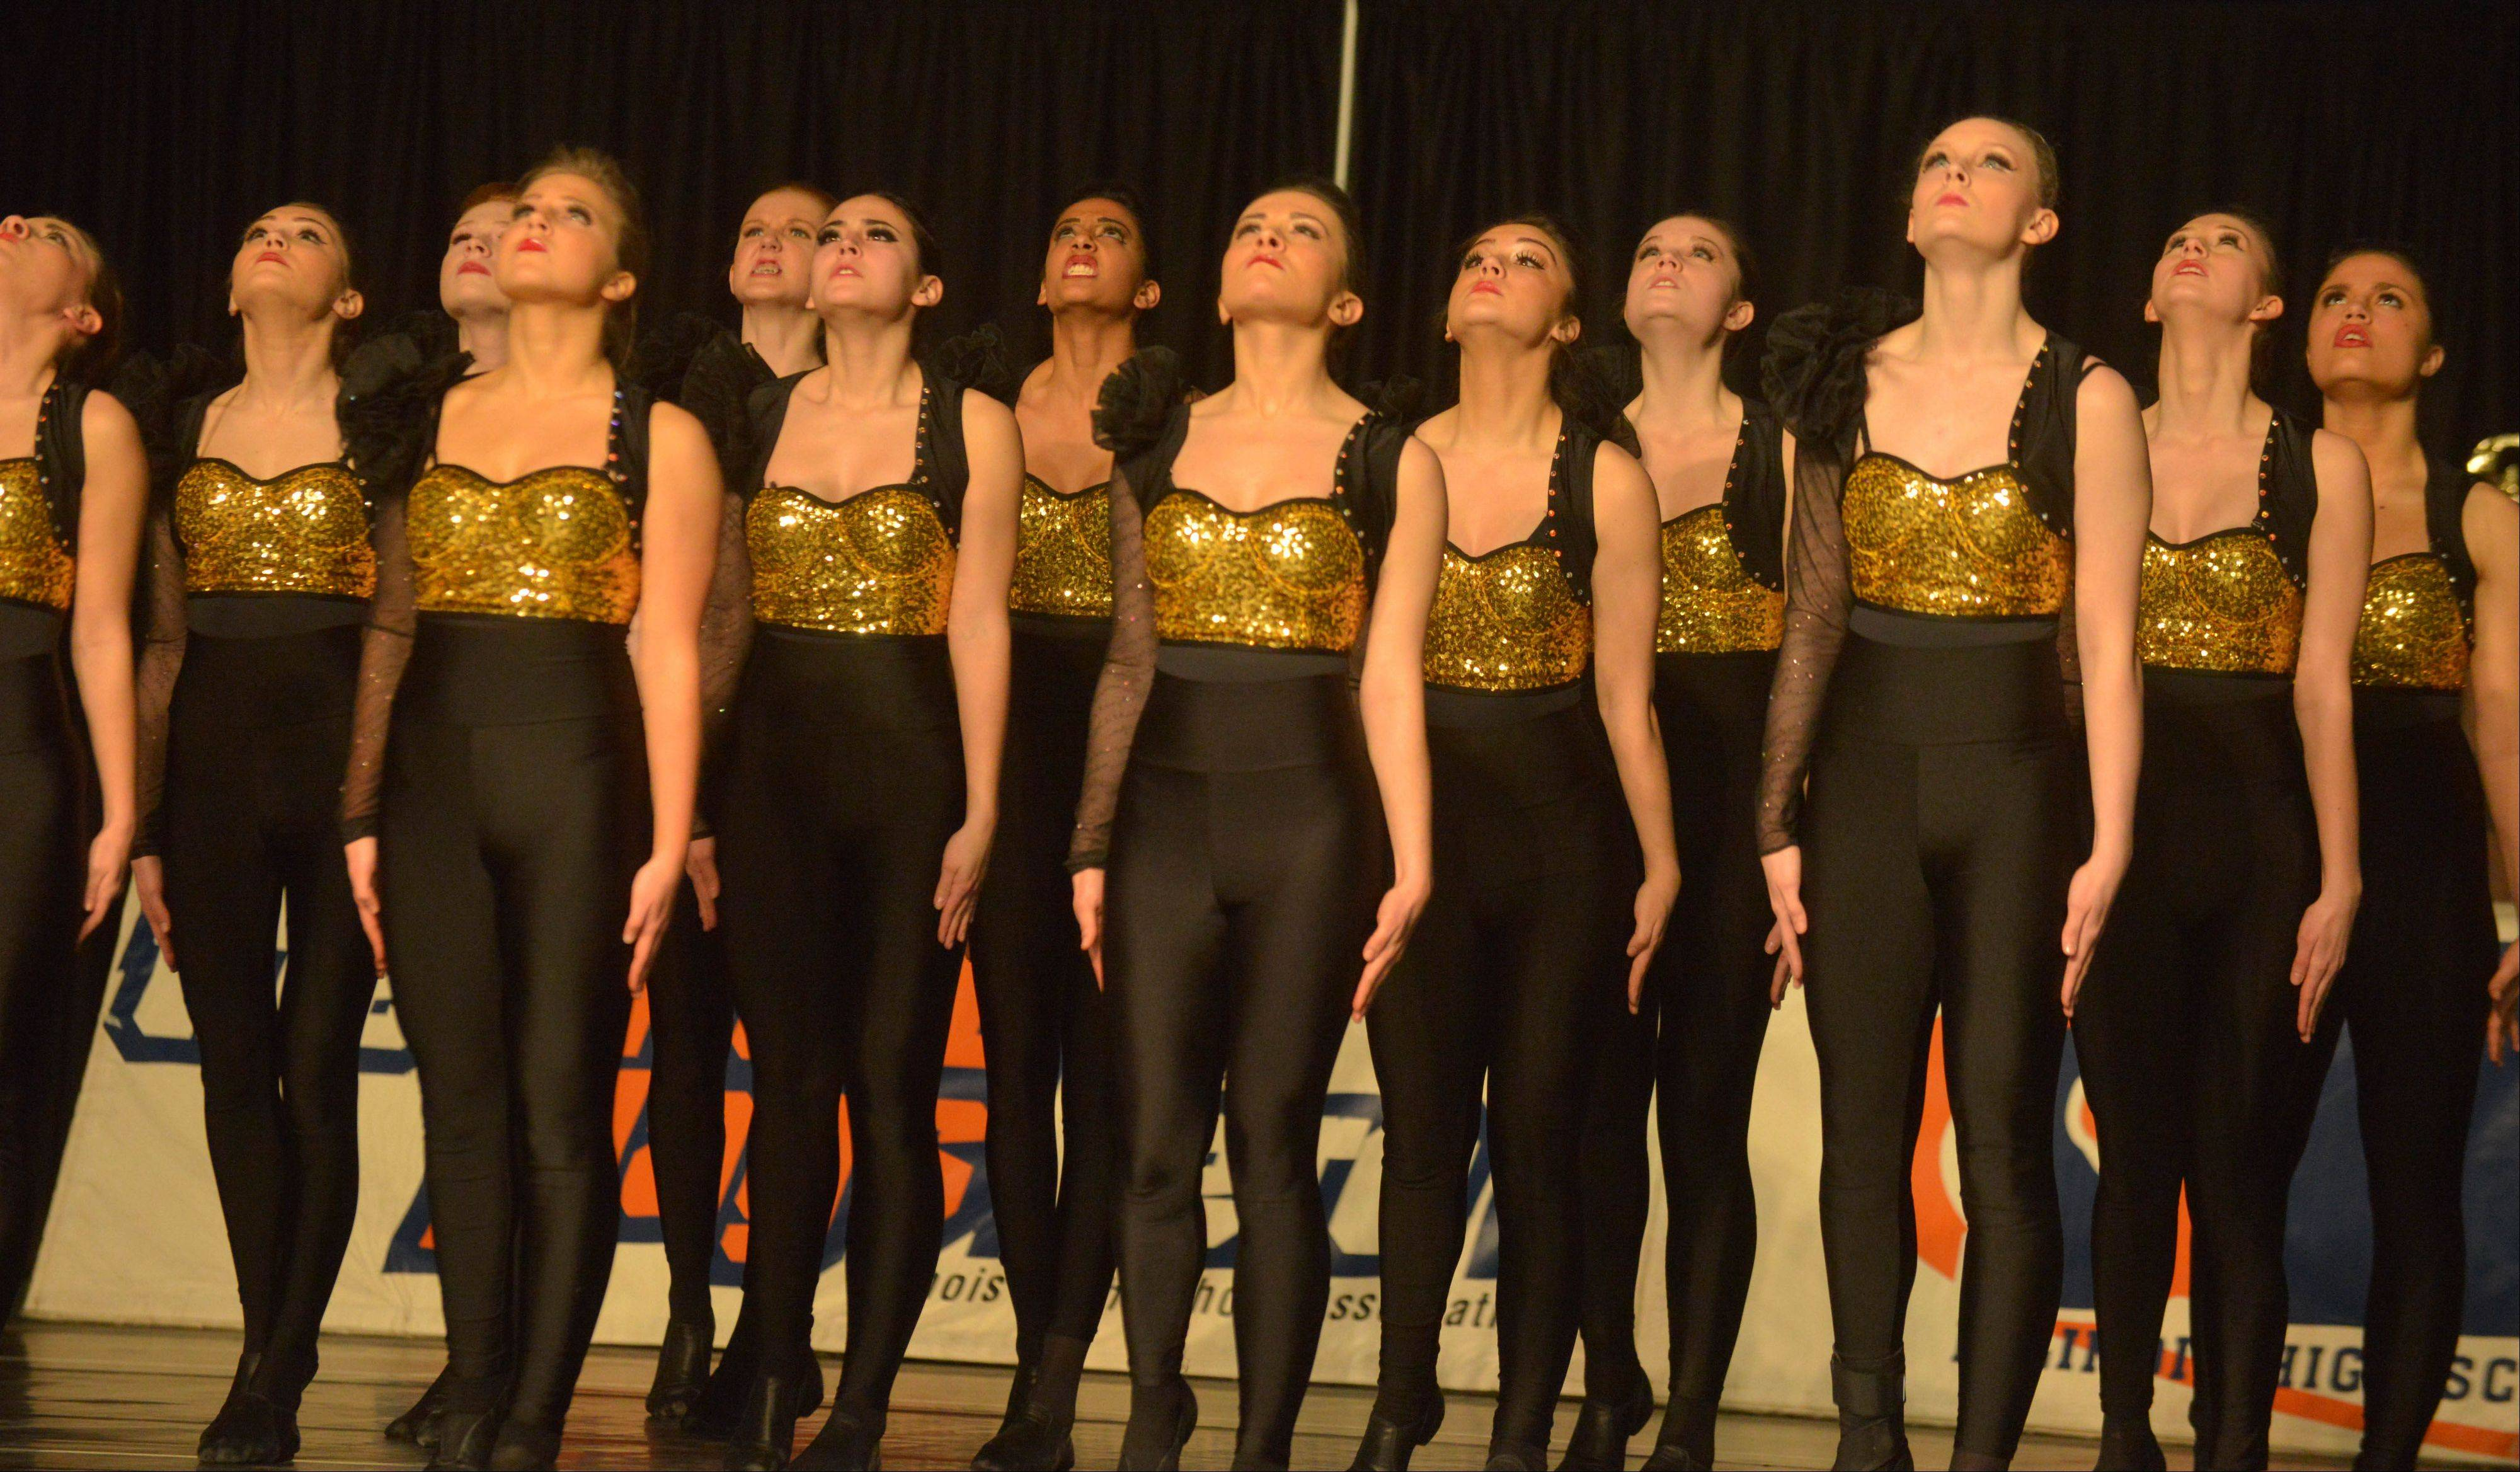 The Downers Grove North High School dance team takes part in the Competitive Dance preliminary round Friday at U.S. Cellular Coliseum in Bloomington.